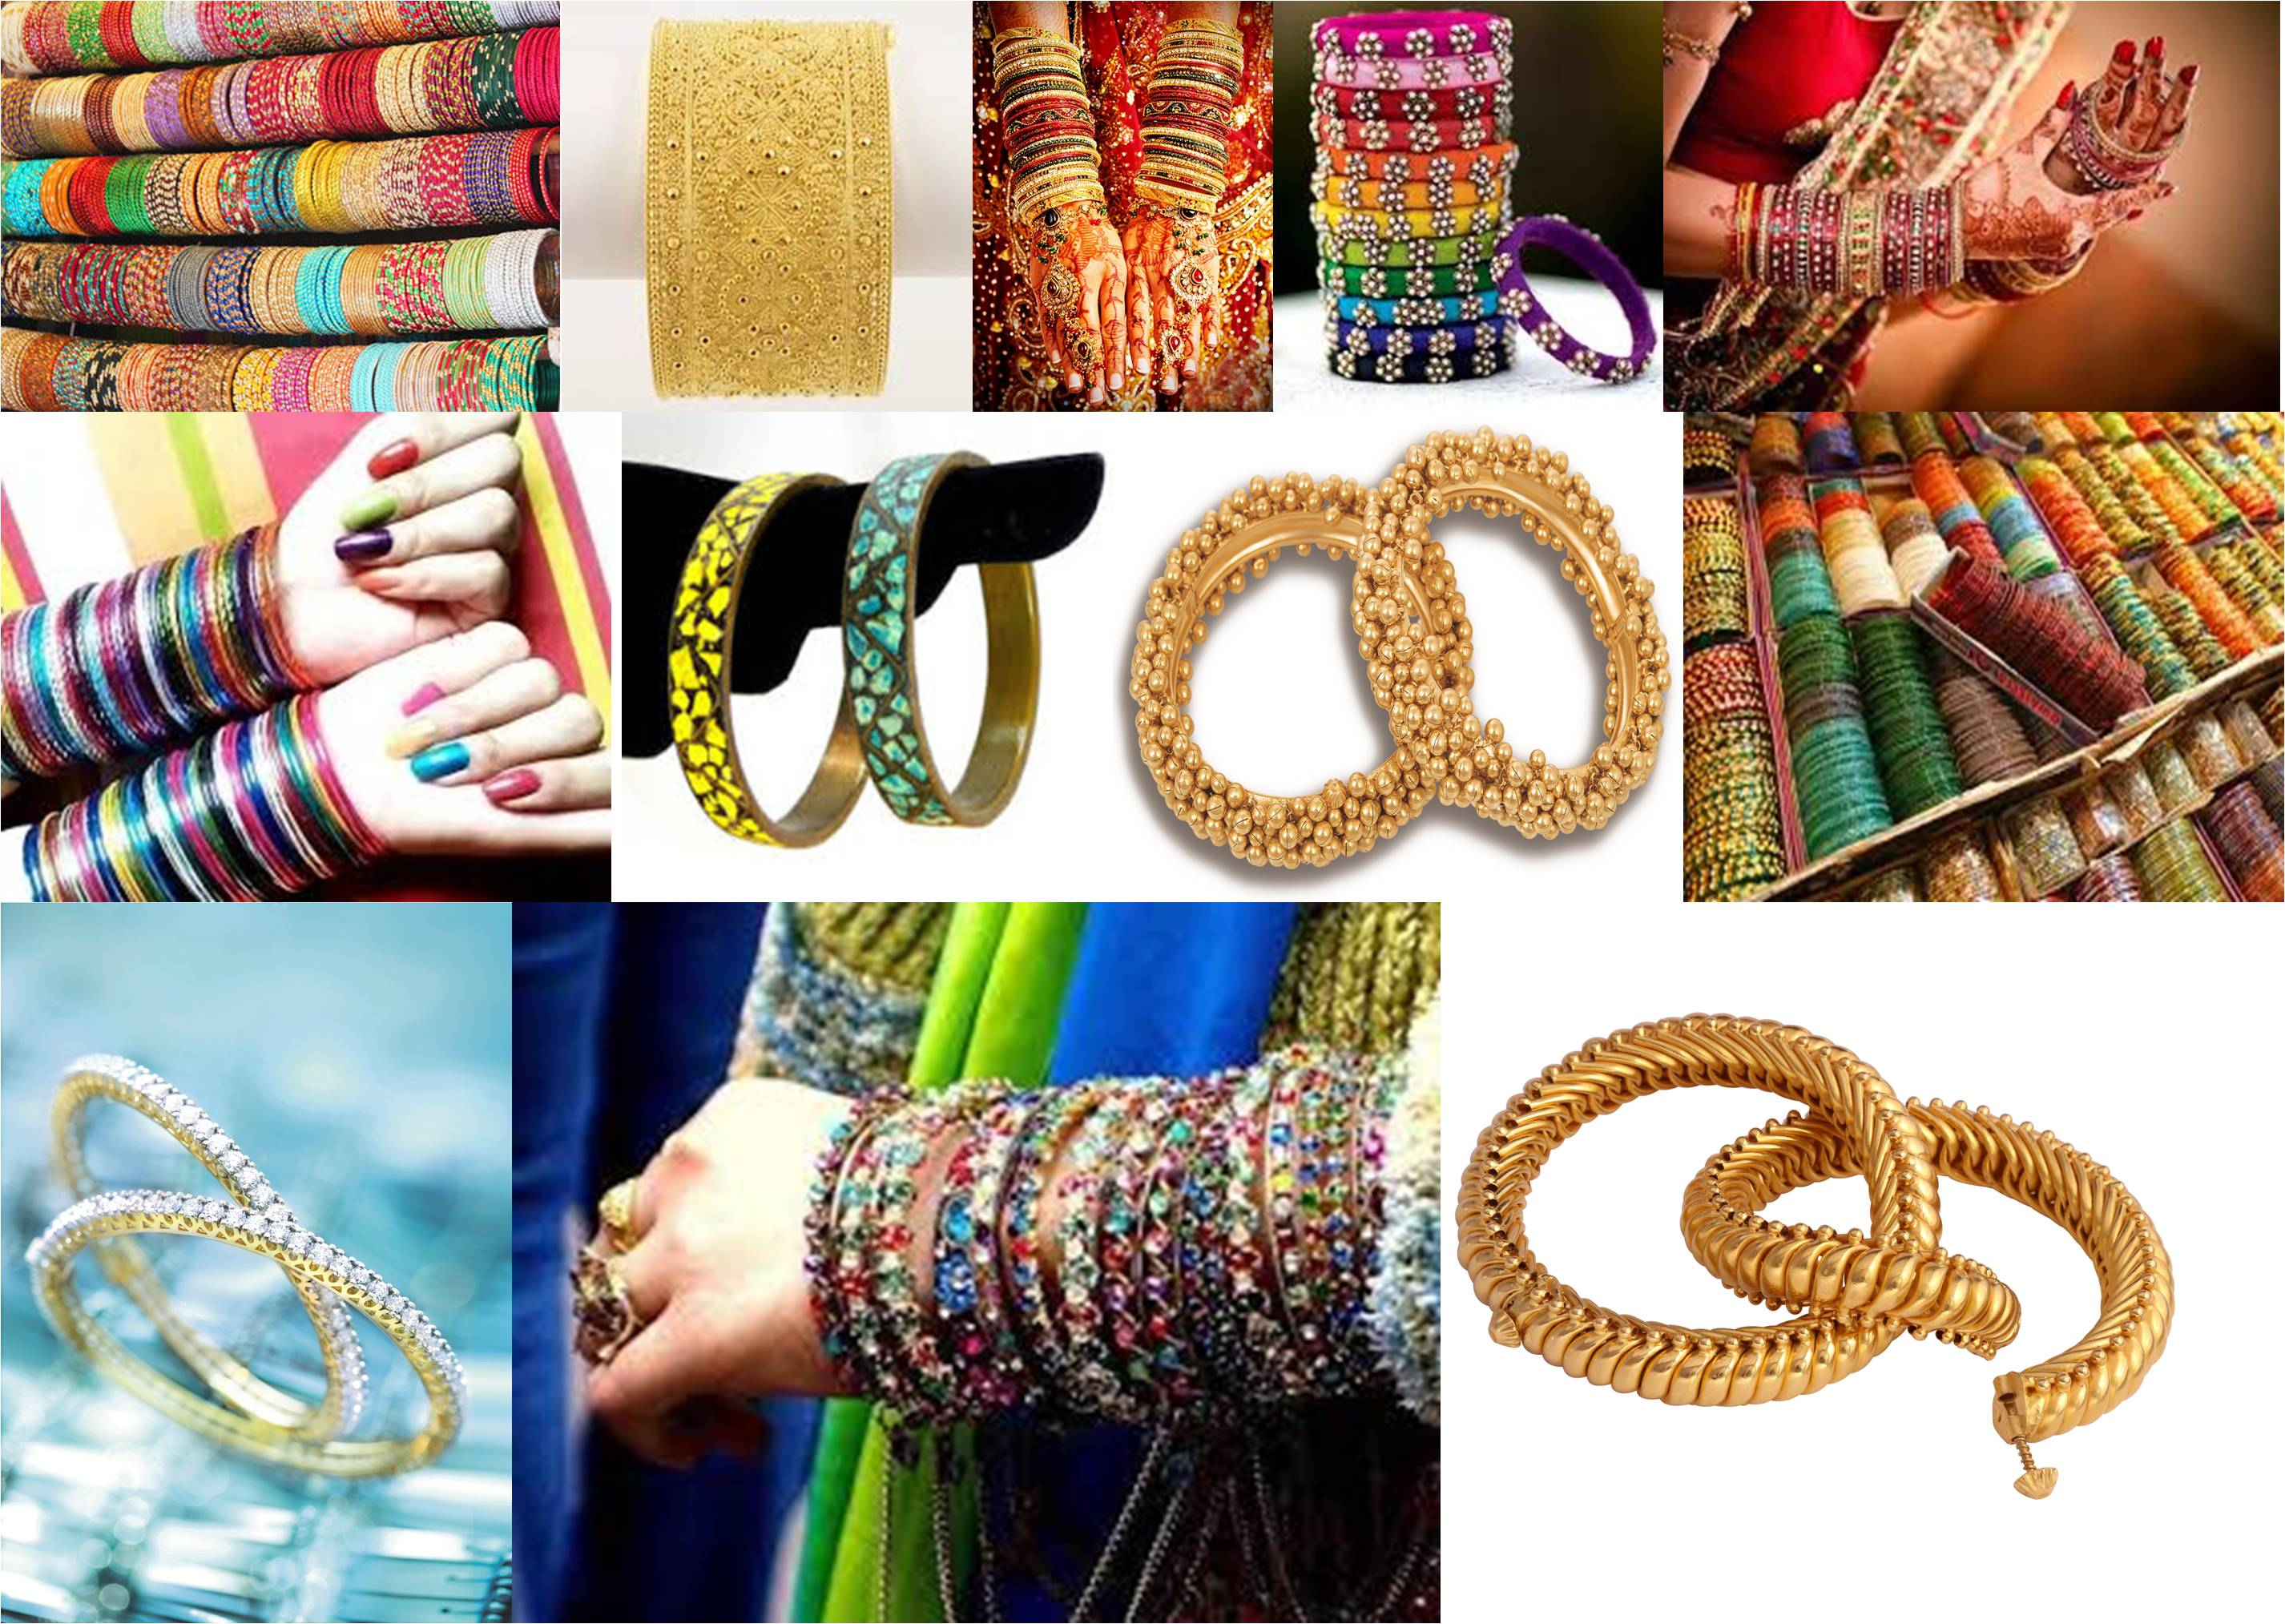 History of bangles - Collage